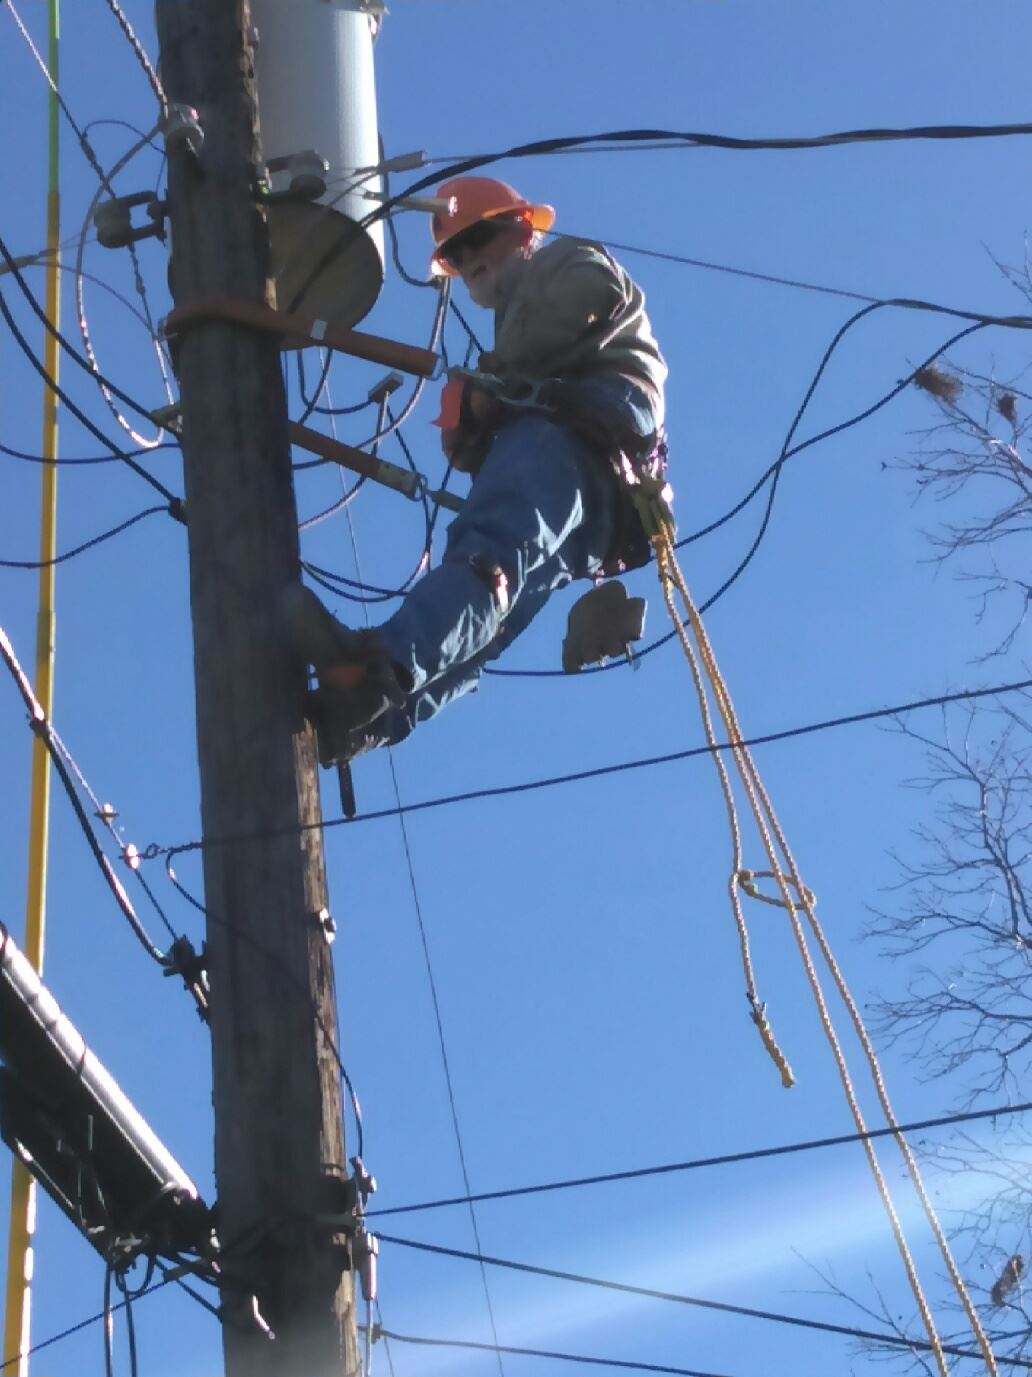 Lineman on pole